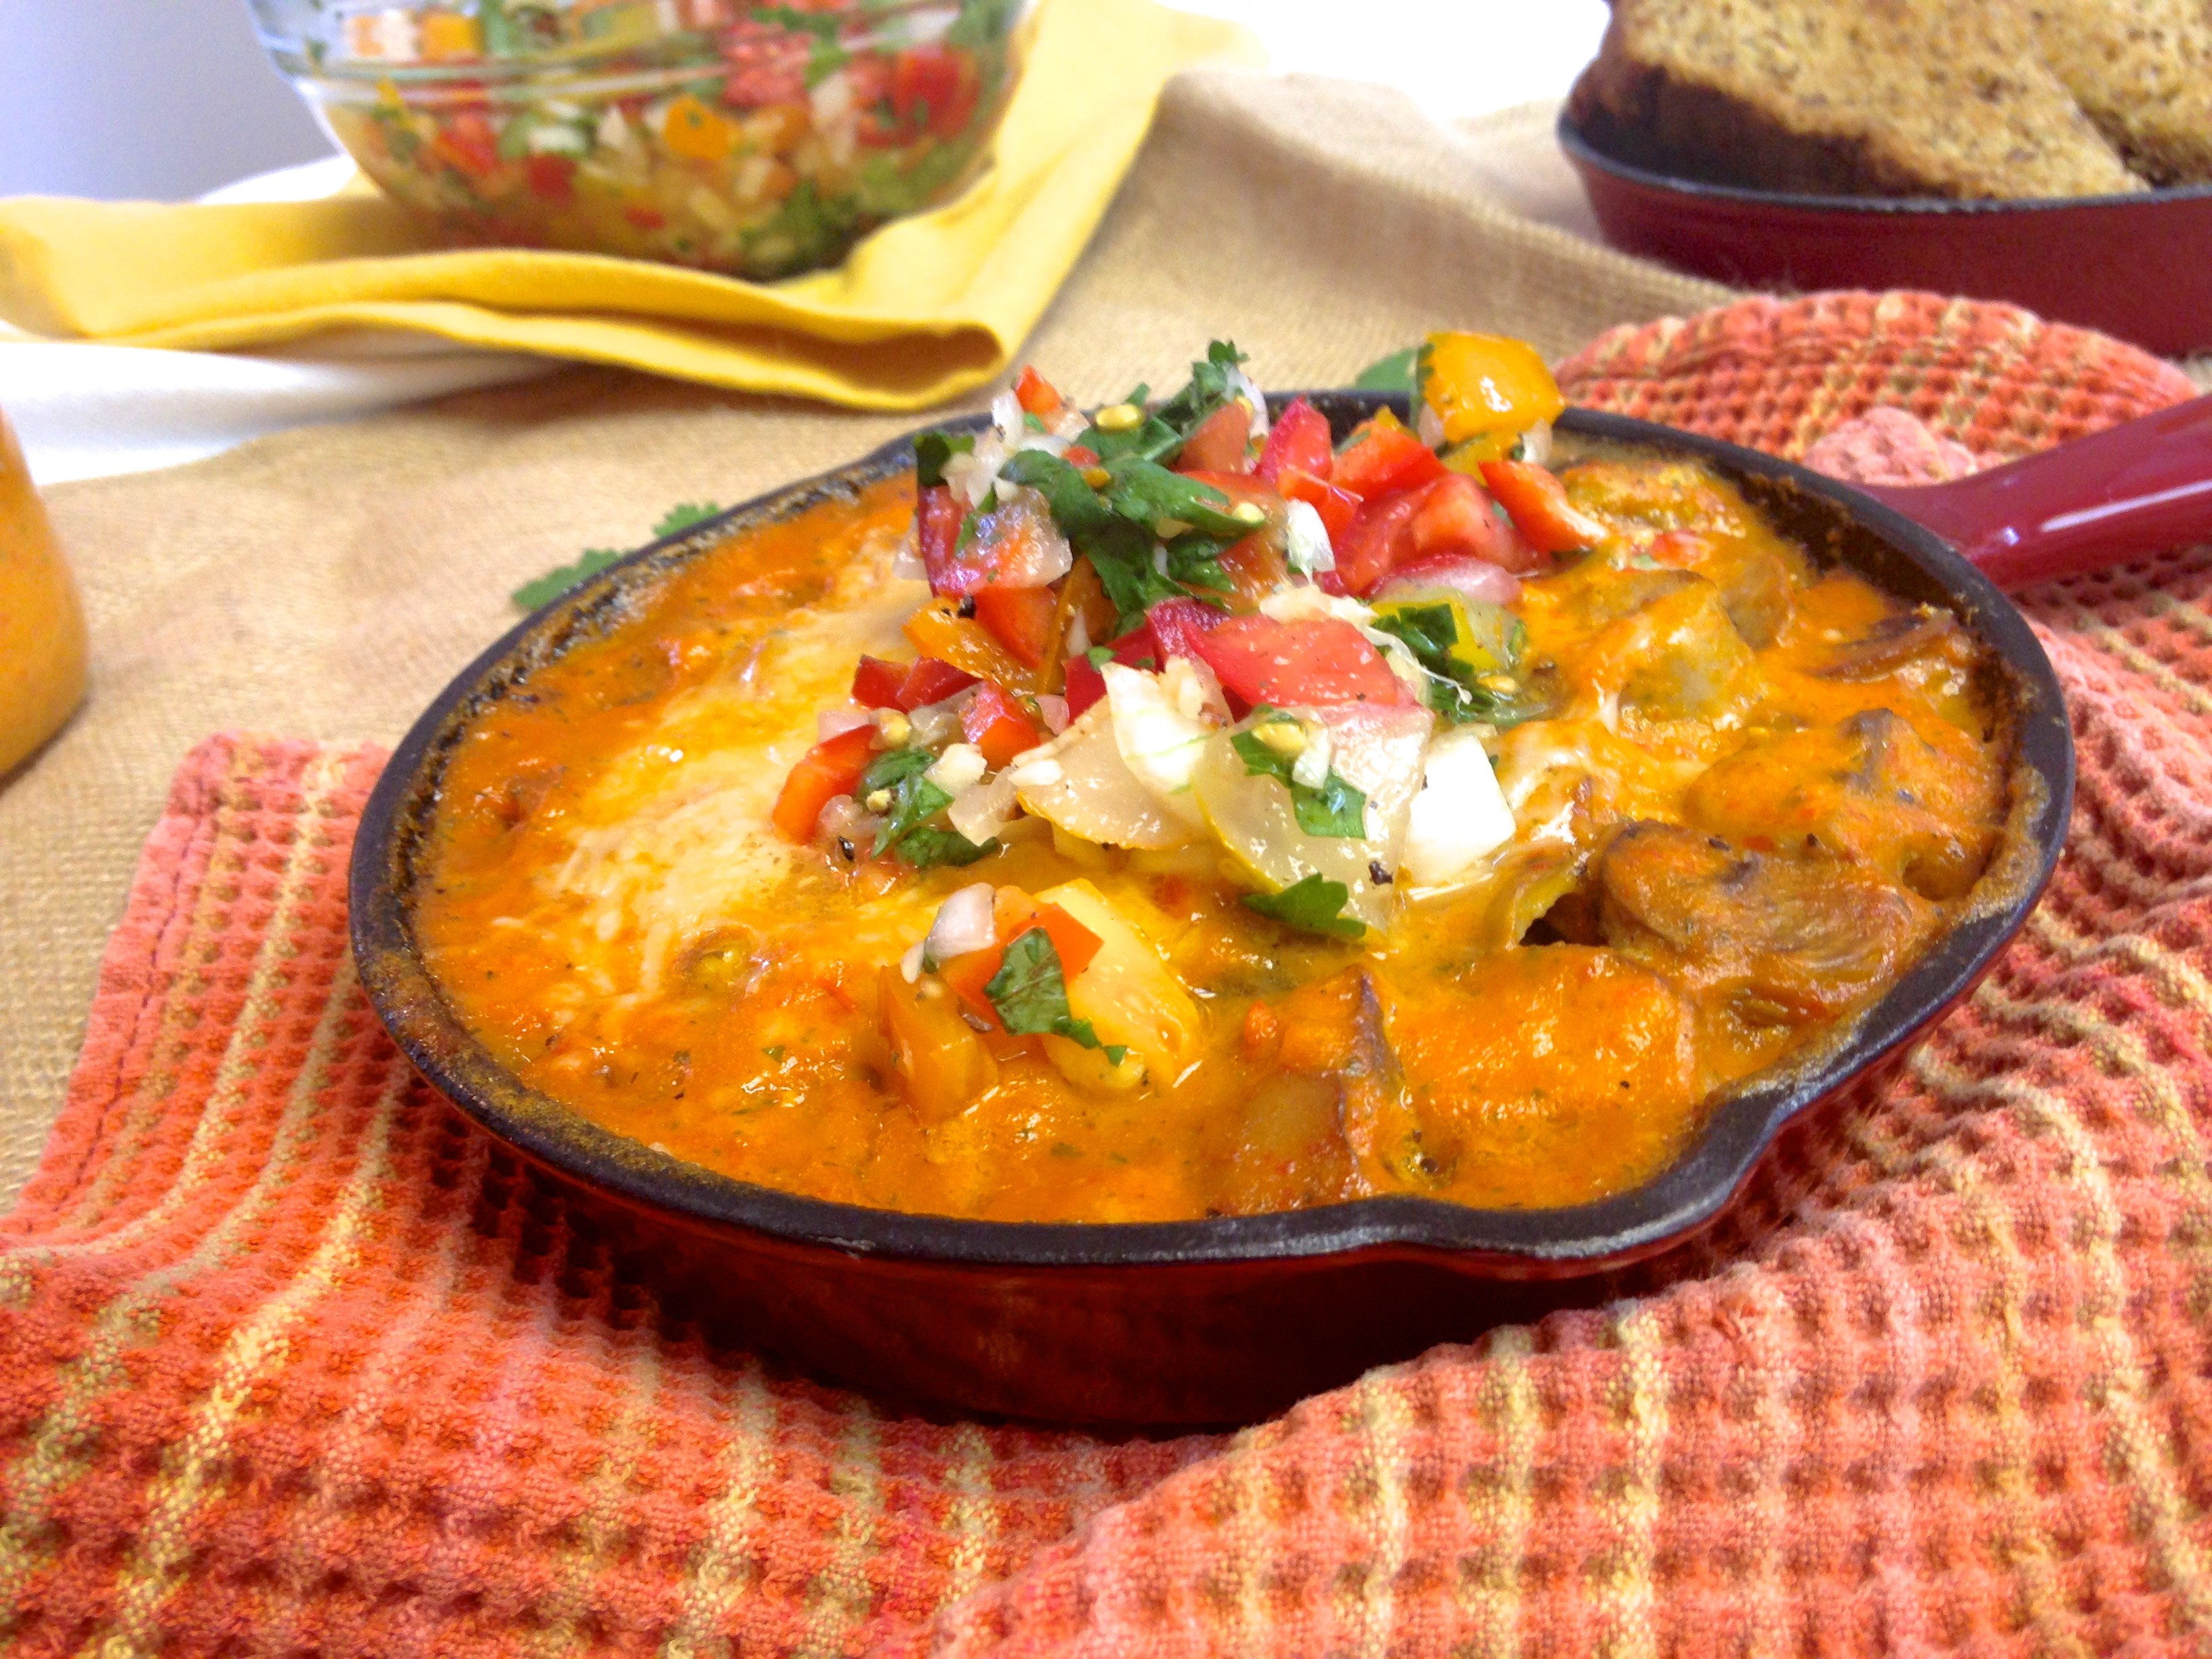 Roasted Red Pepper Egg Skillet with Fresh Pico de Gallo